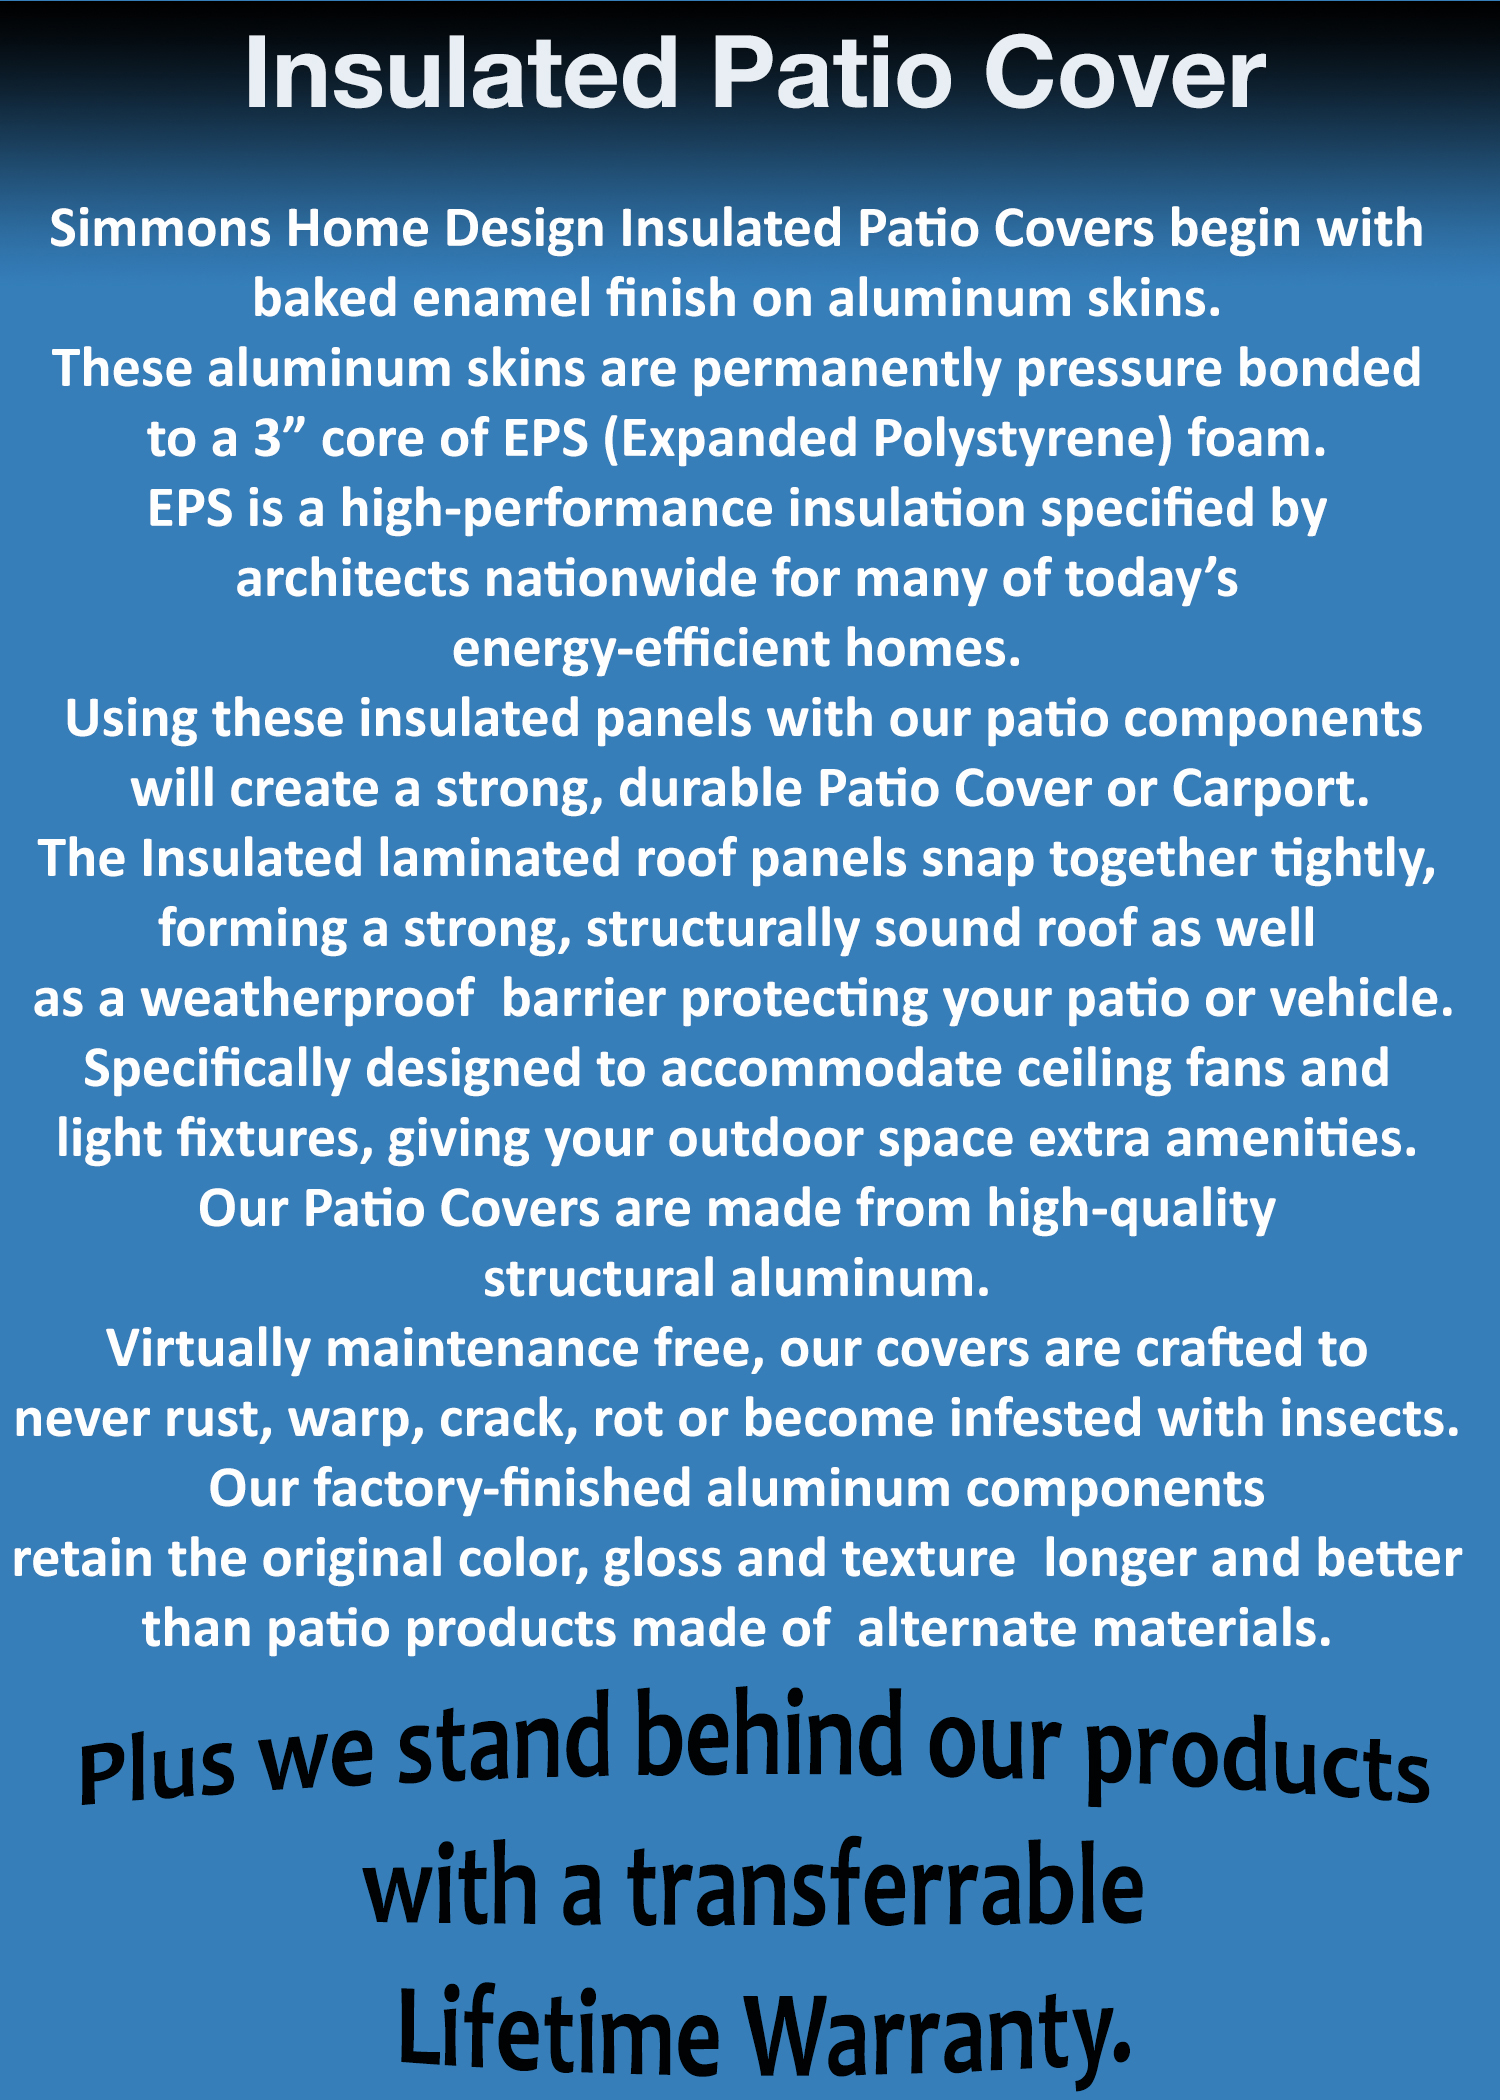 About our Insulated Patio Covers